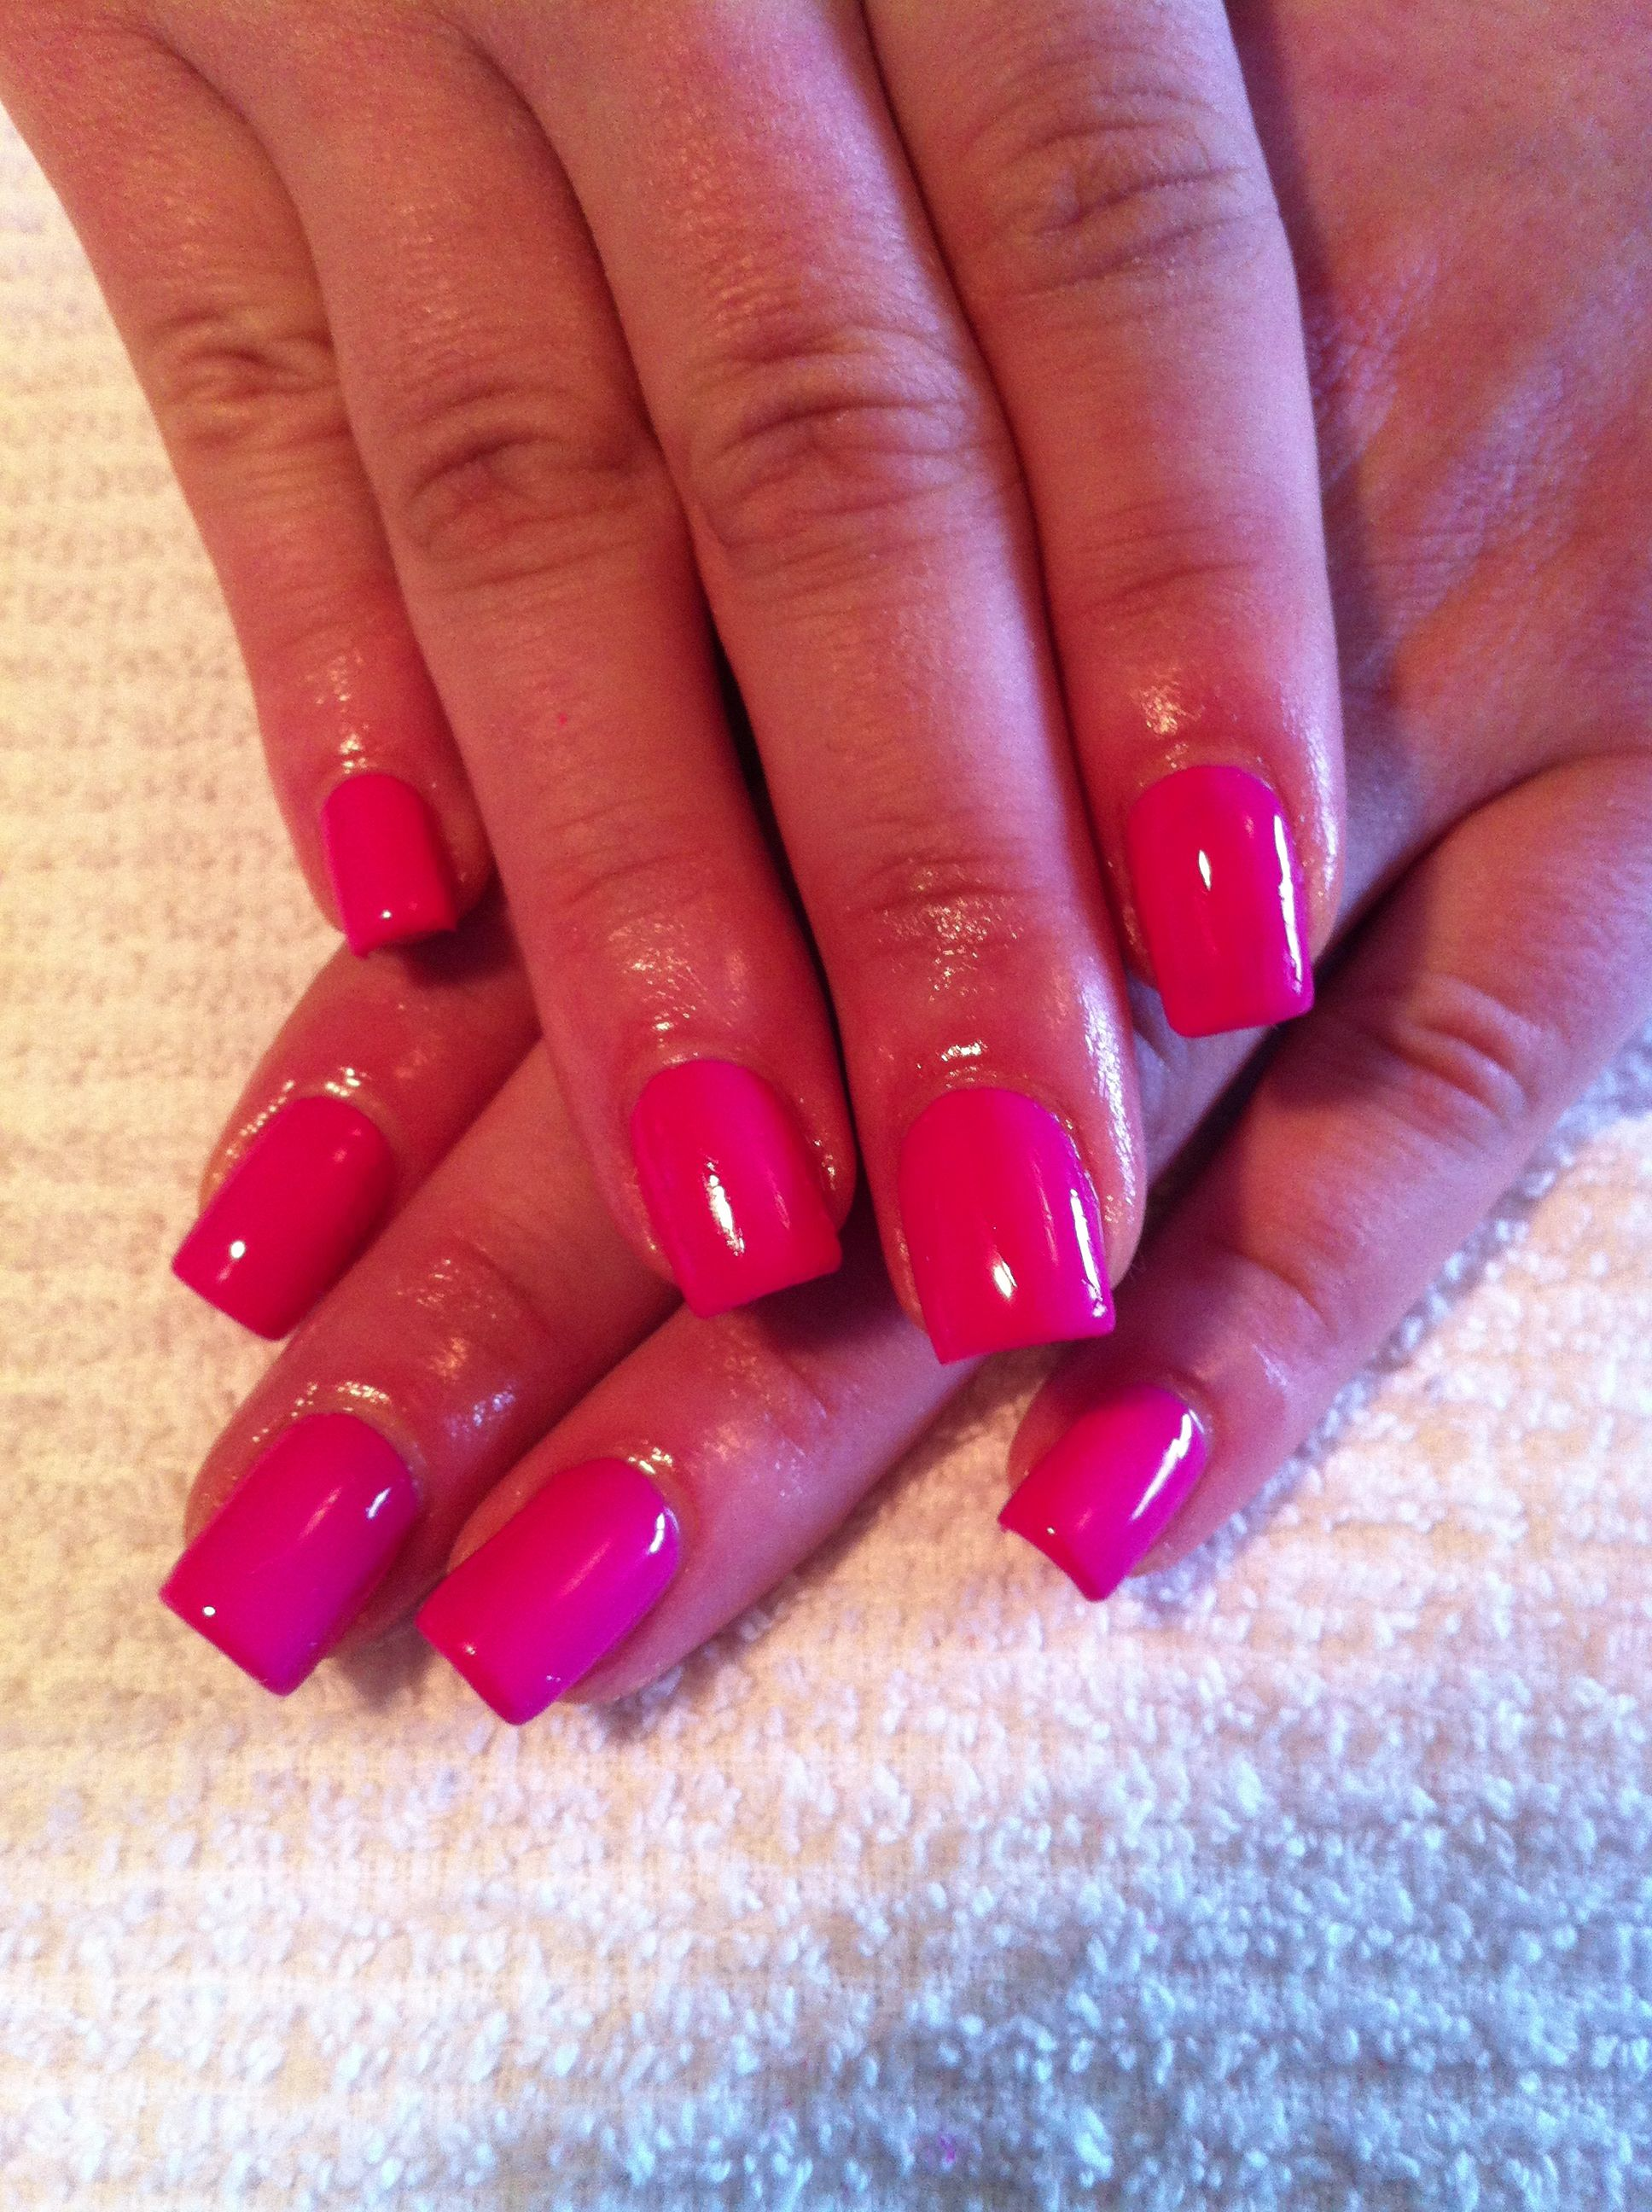 Pretty Shellac Nails: Gels With CND Shellac In Hot Pop Pink